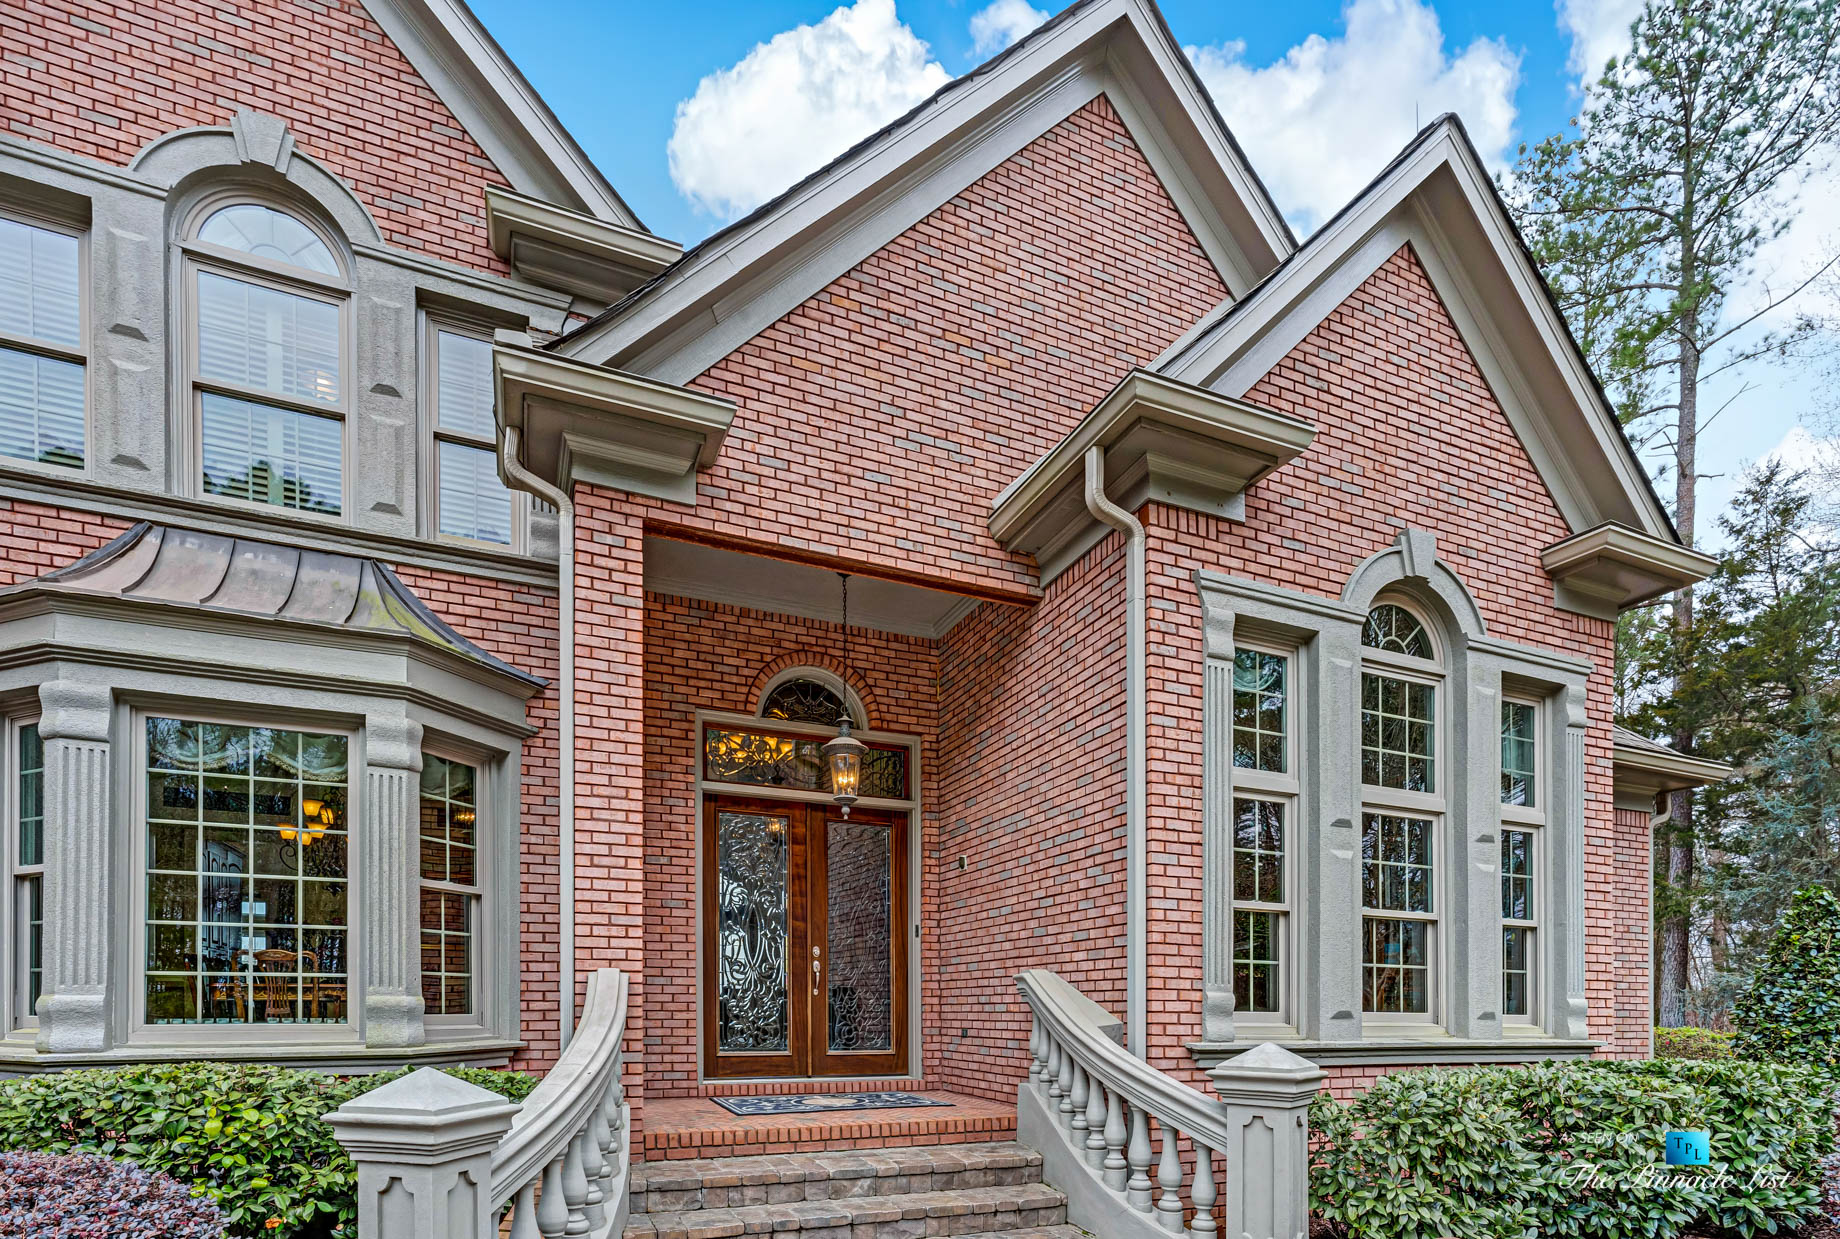 2219 Costley Mill Rd NE, Conyers, GA, USA - Front House Entrance Glass Doors - Luxury Real Estate - Equestrian Country Home